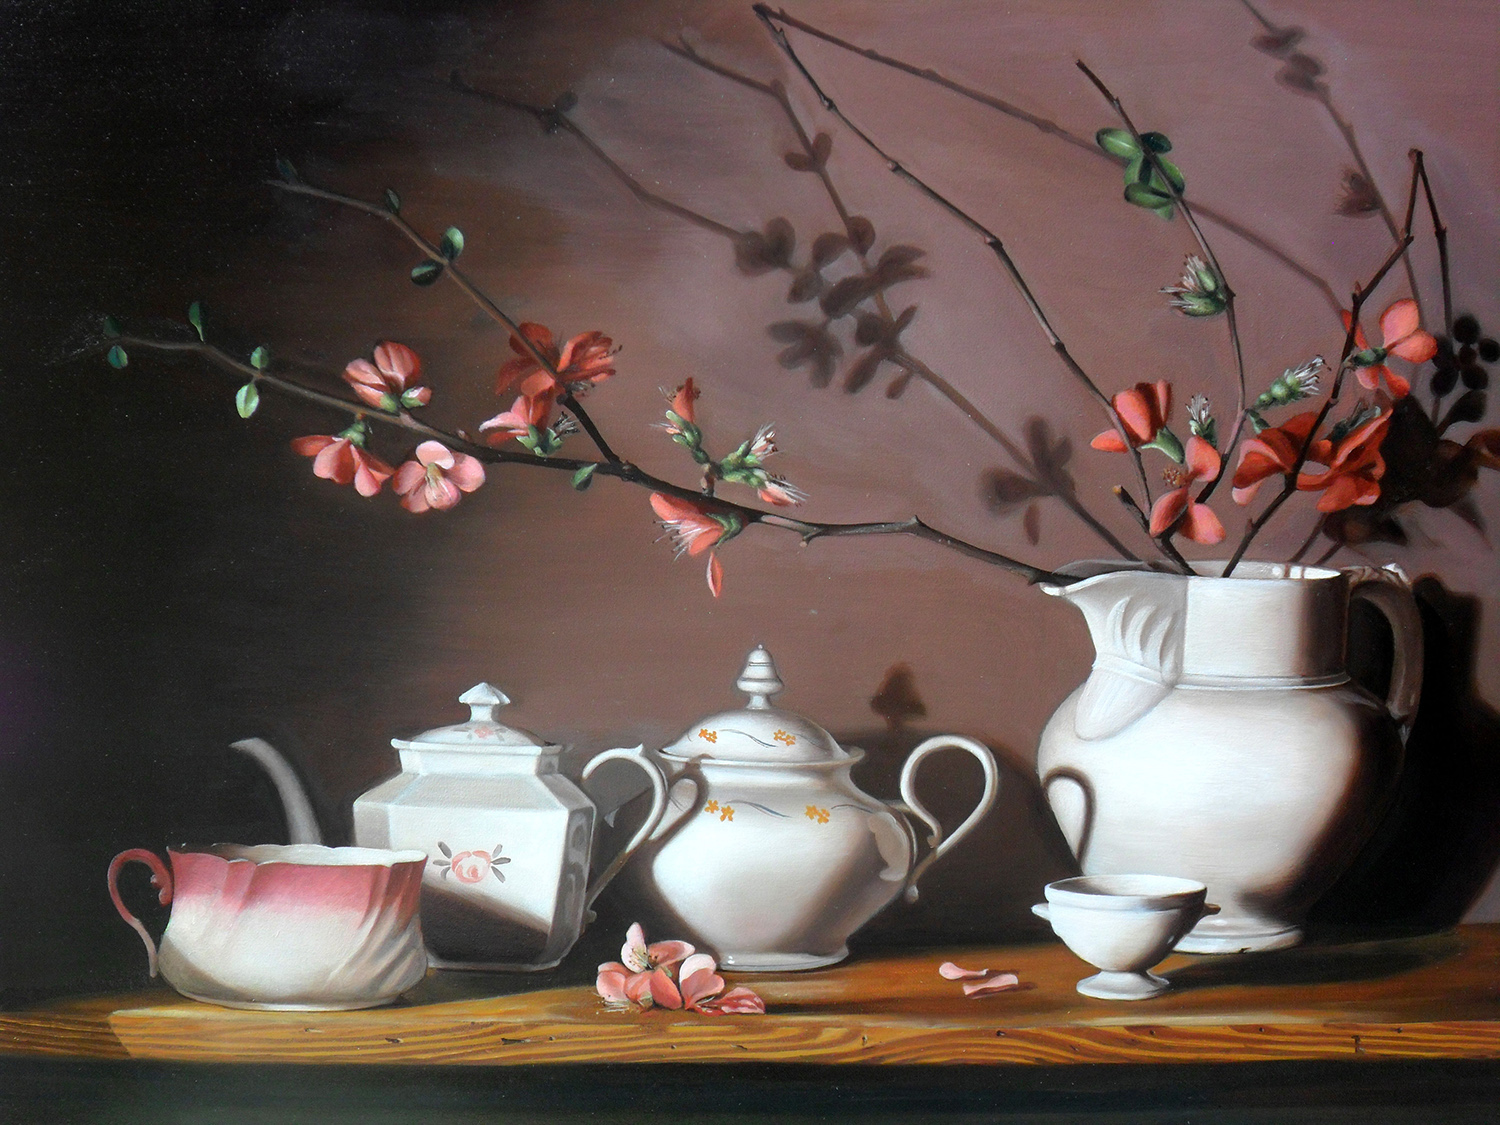 the-tea-time-marie-brigitte-antos.jpg